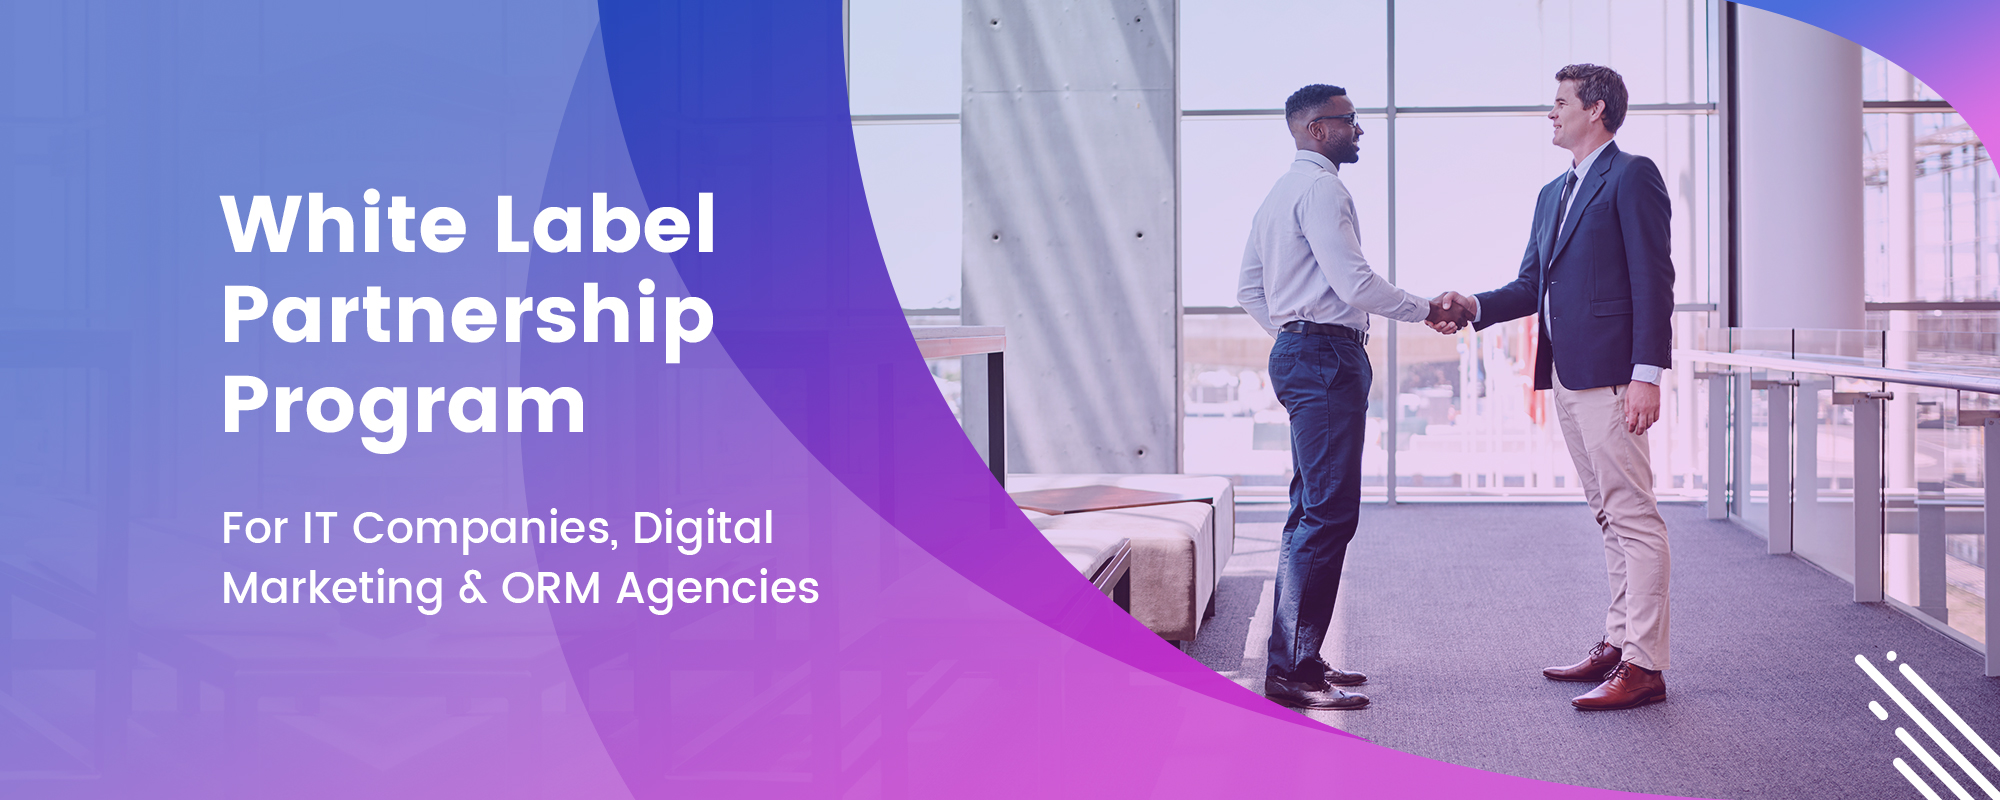 How To Grow Your Business With FATbit's White Label Partnership Program?